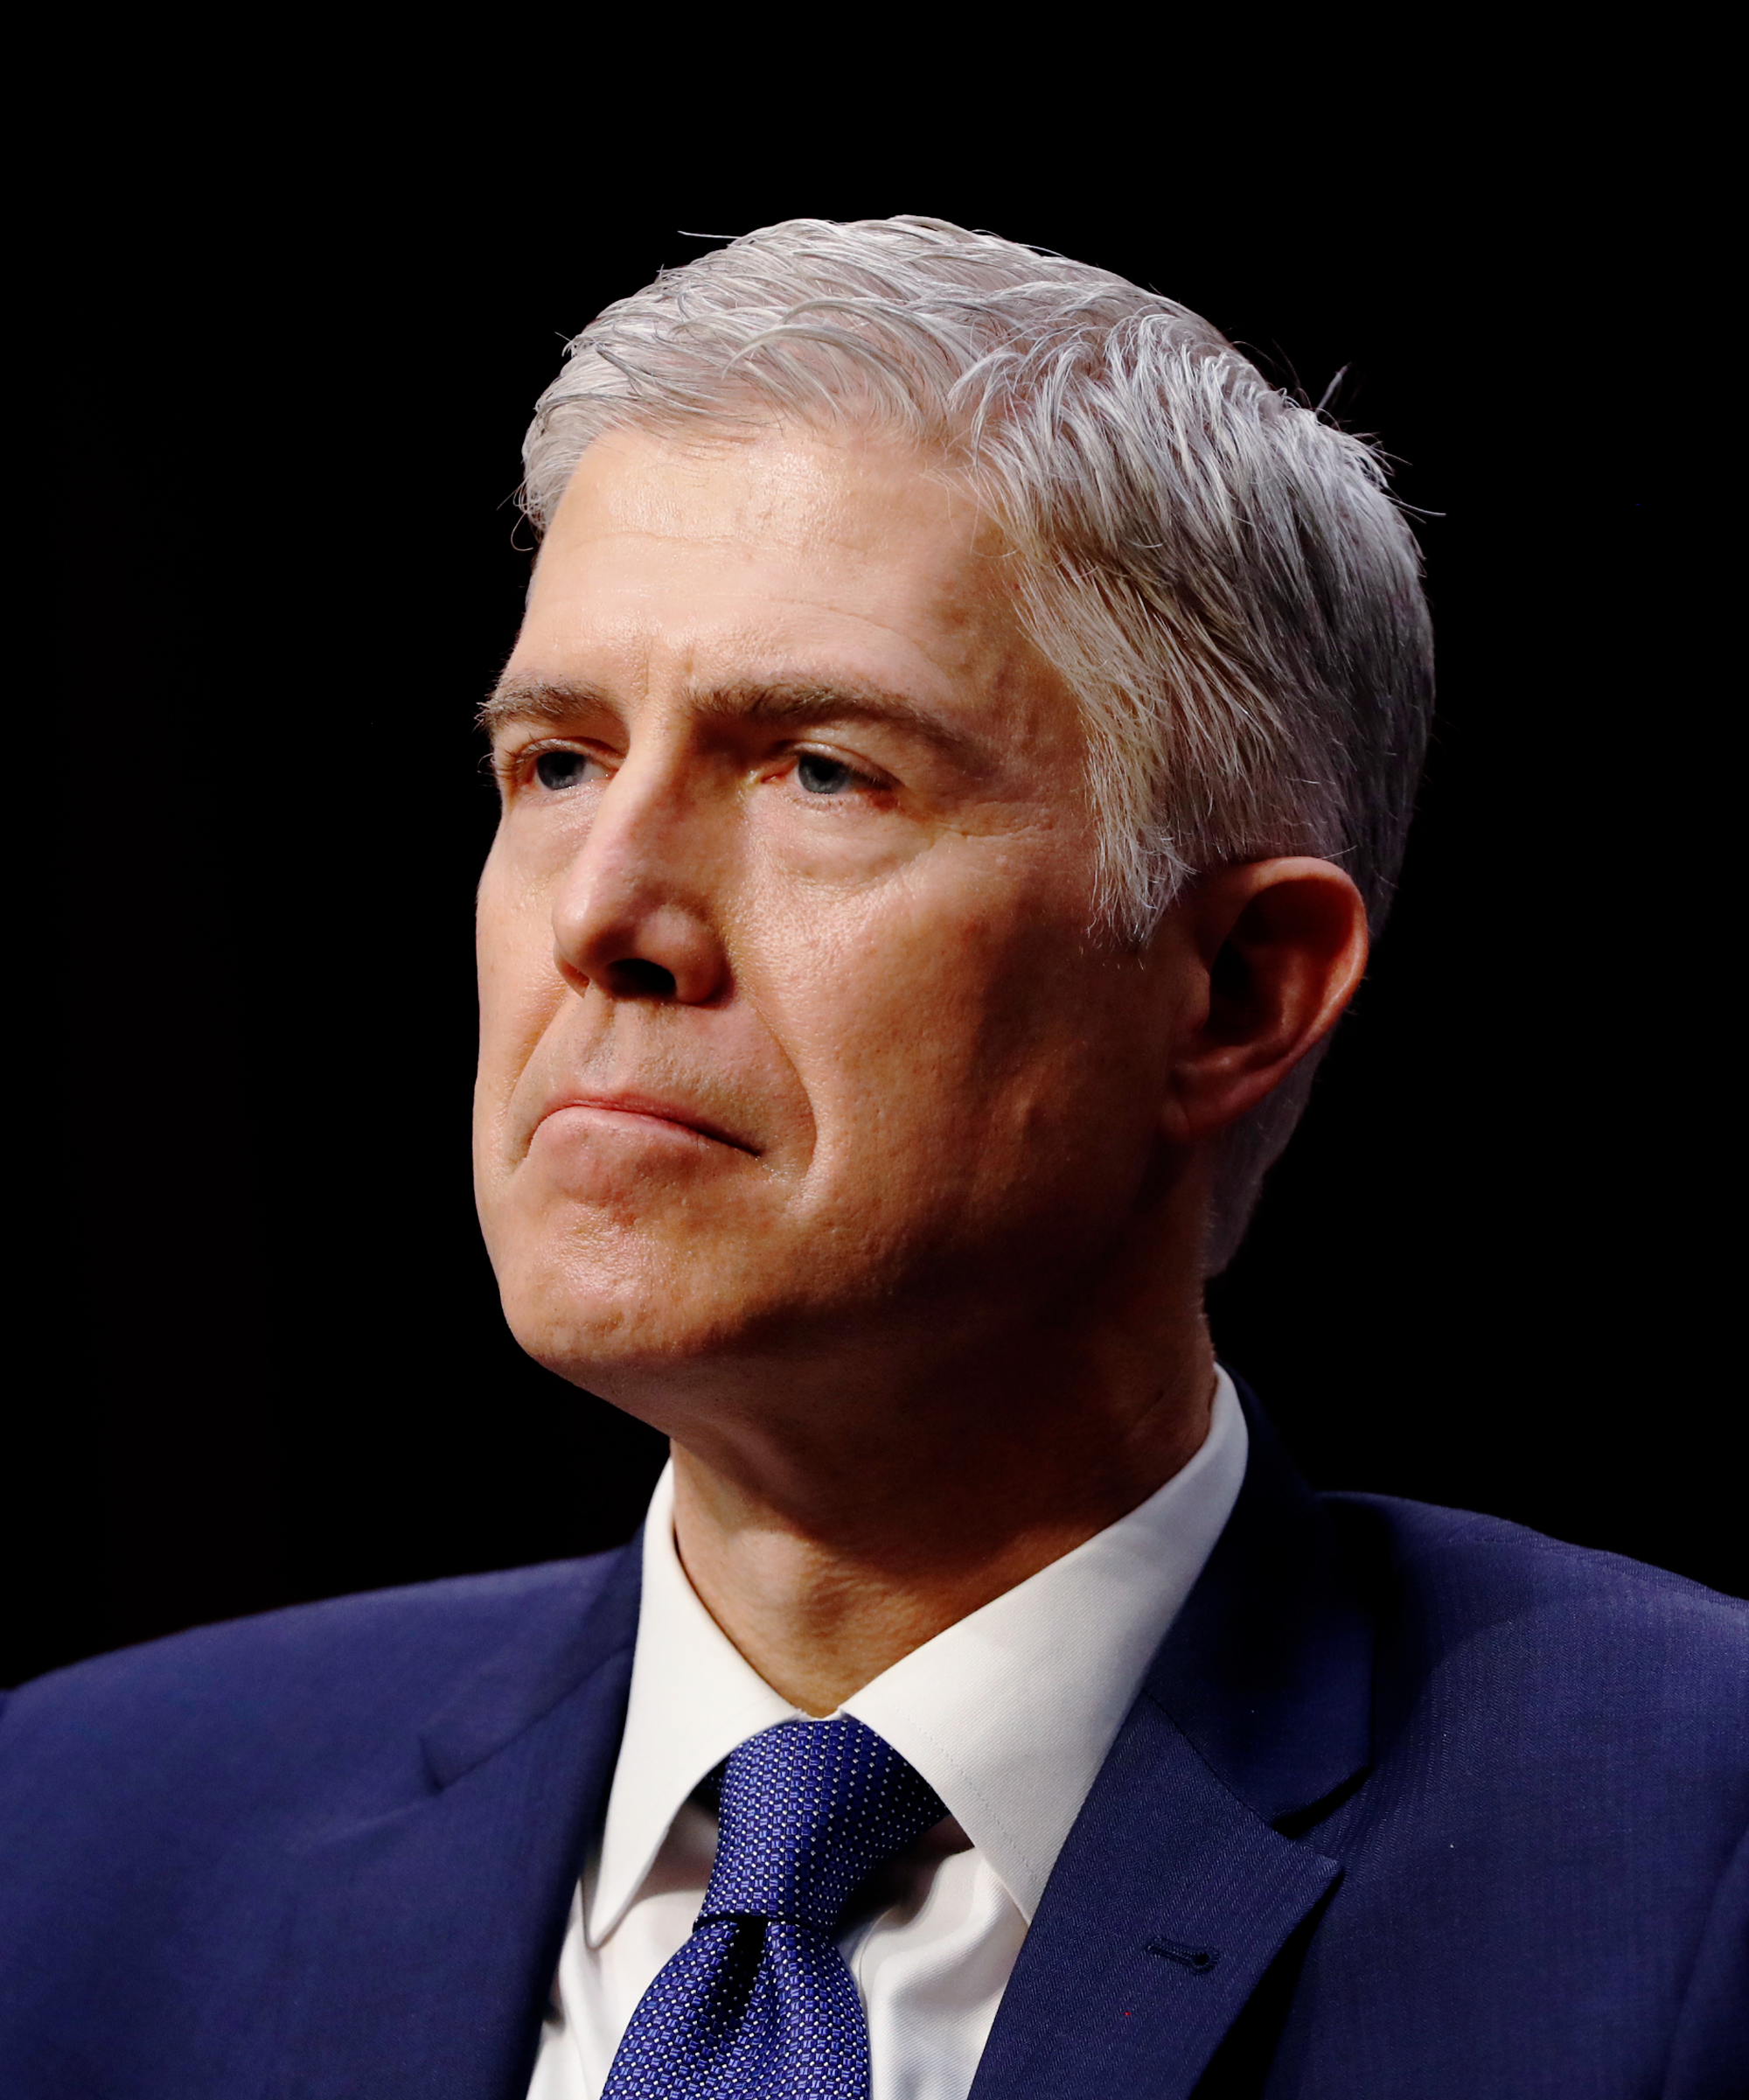 NEW INFORMATION: Gorsuch confirmed; Senate approves Trump nominee, 54-45""